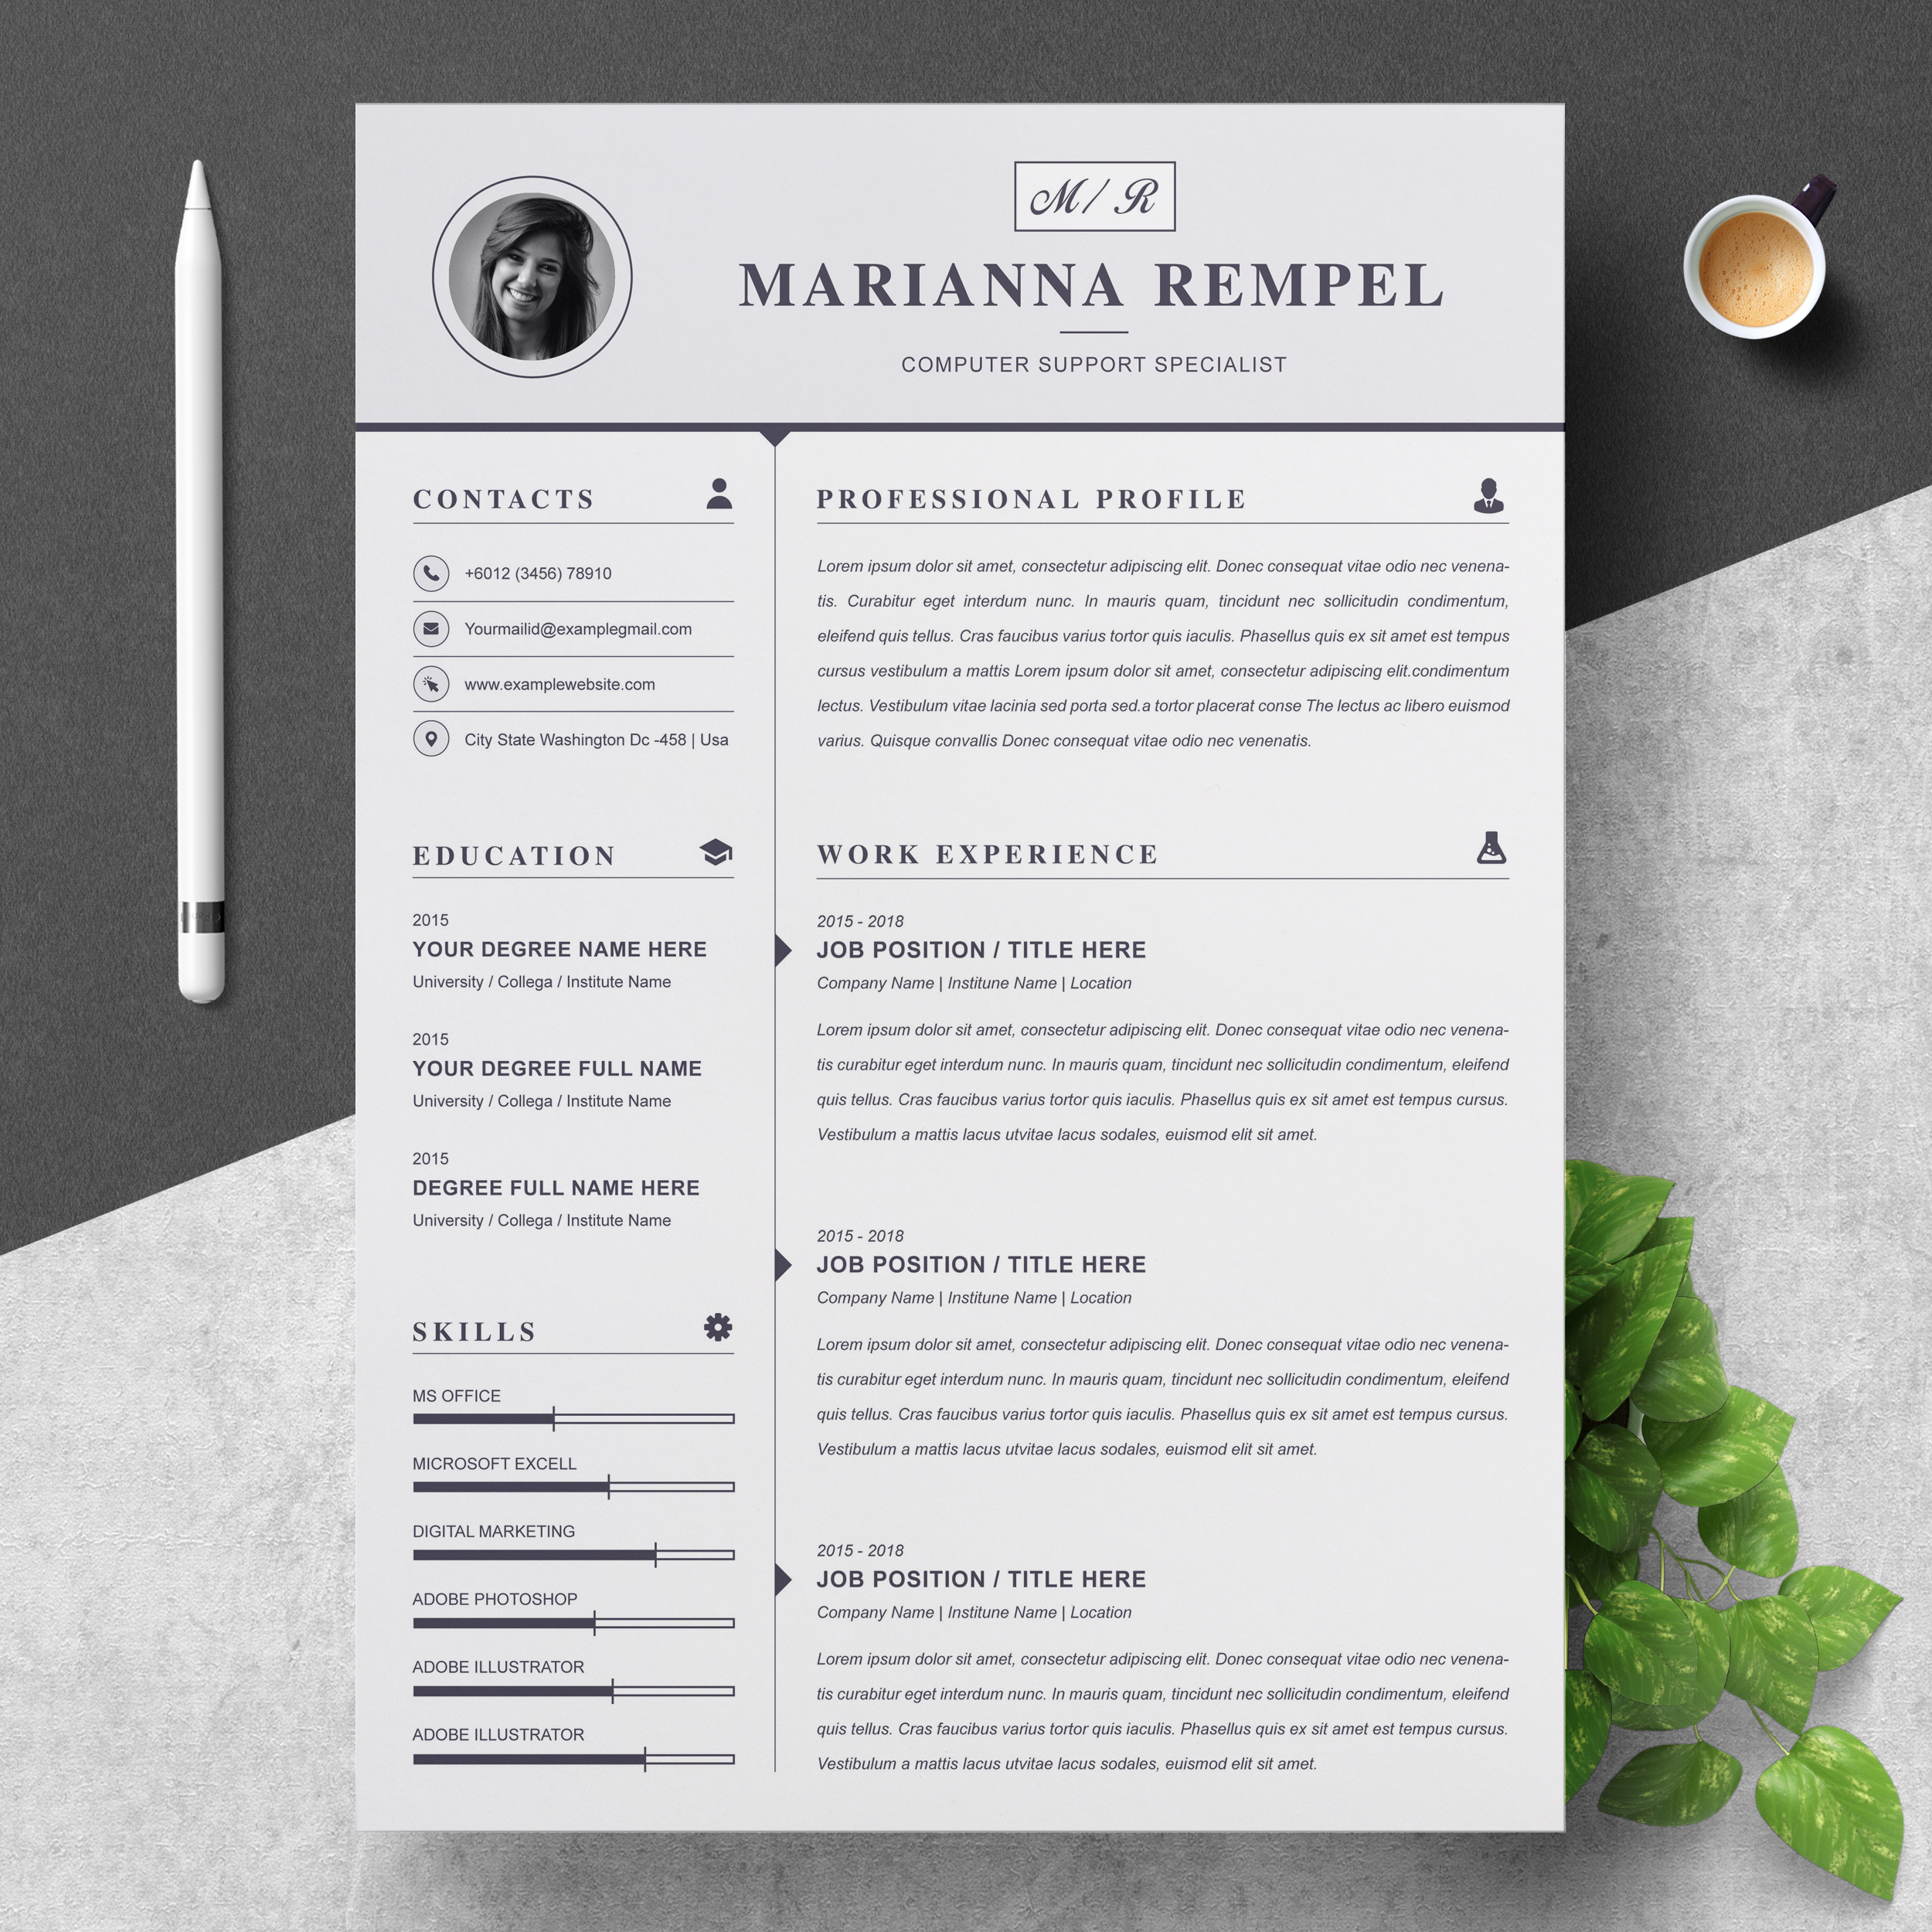 Computer Support Specialist Resume Template